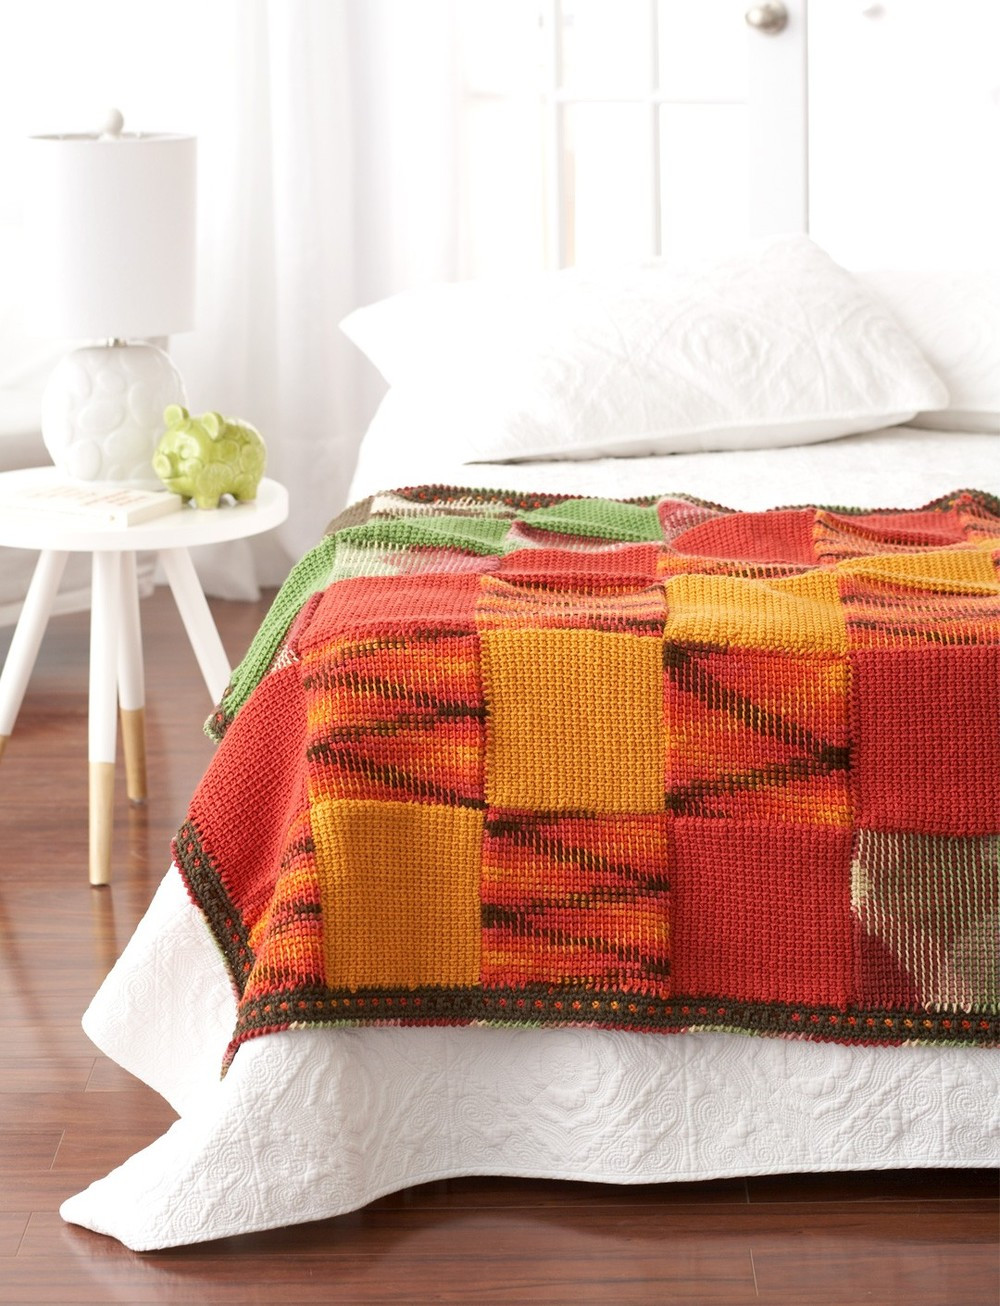 Best Of Shades Of Amber Tunisian Afghan Afghan Stitch Patterns Of Beautiful 50 Pics Afghan Stitch Patterns